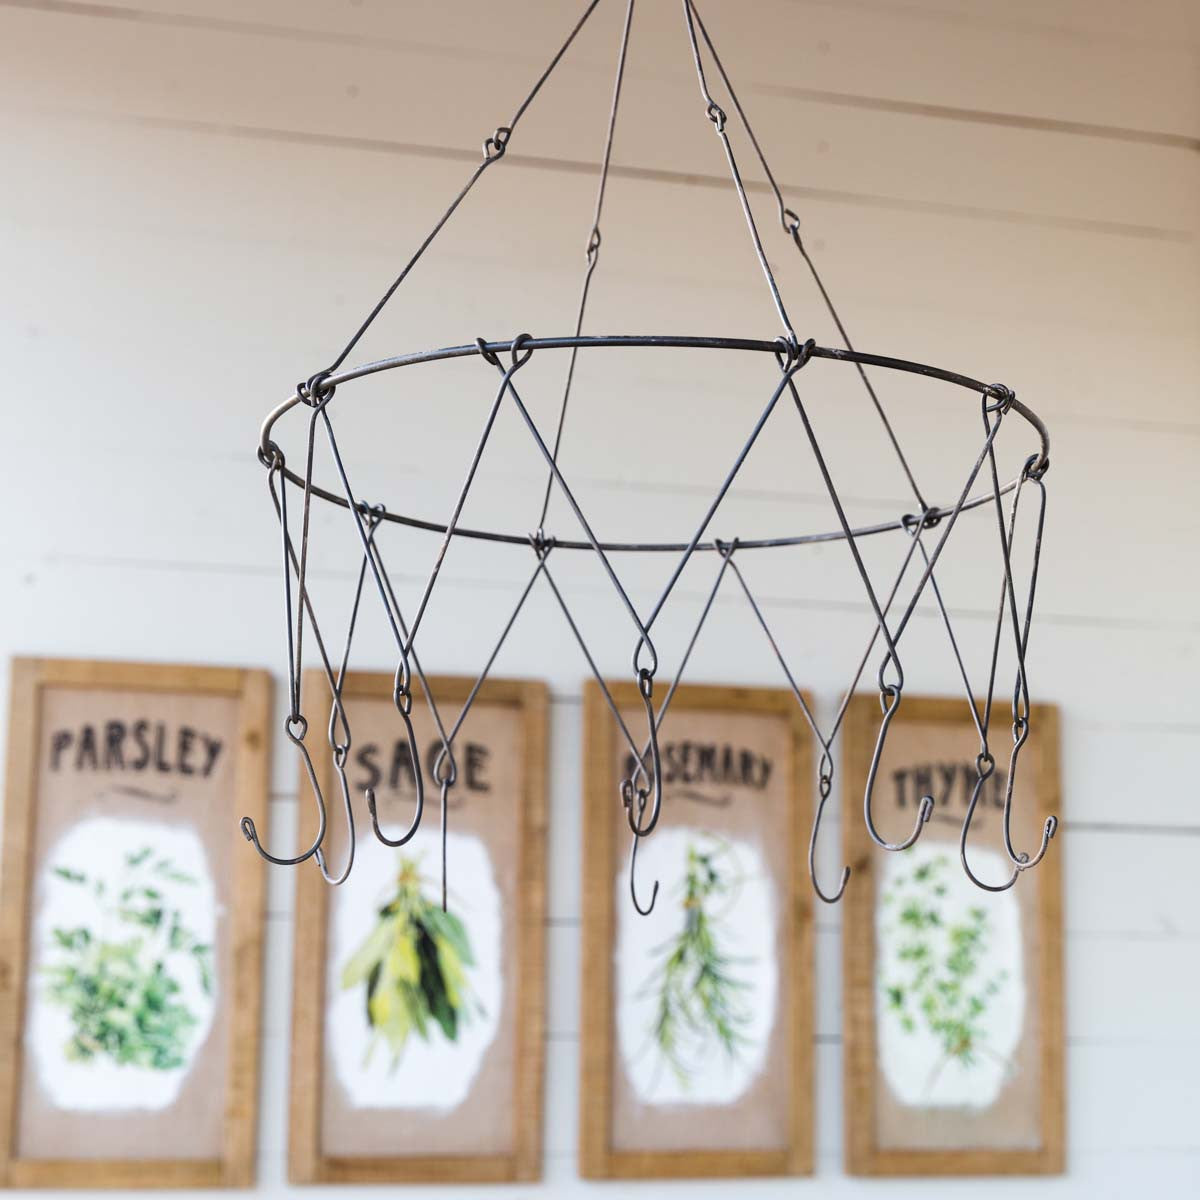 Hanging Metal Herb Drying Rack